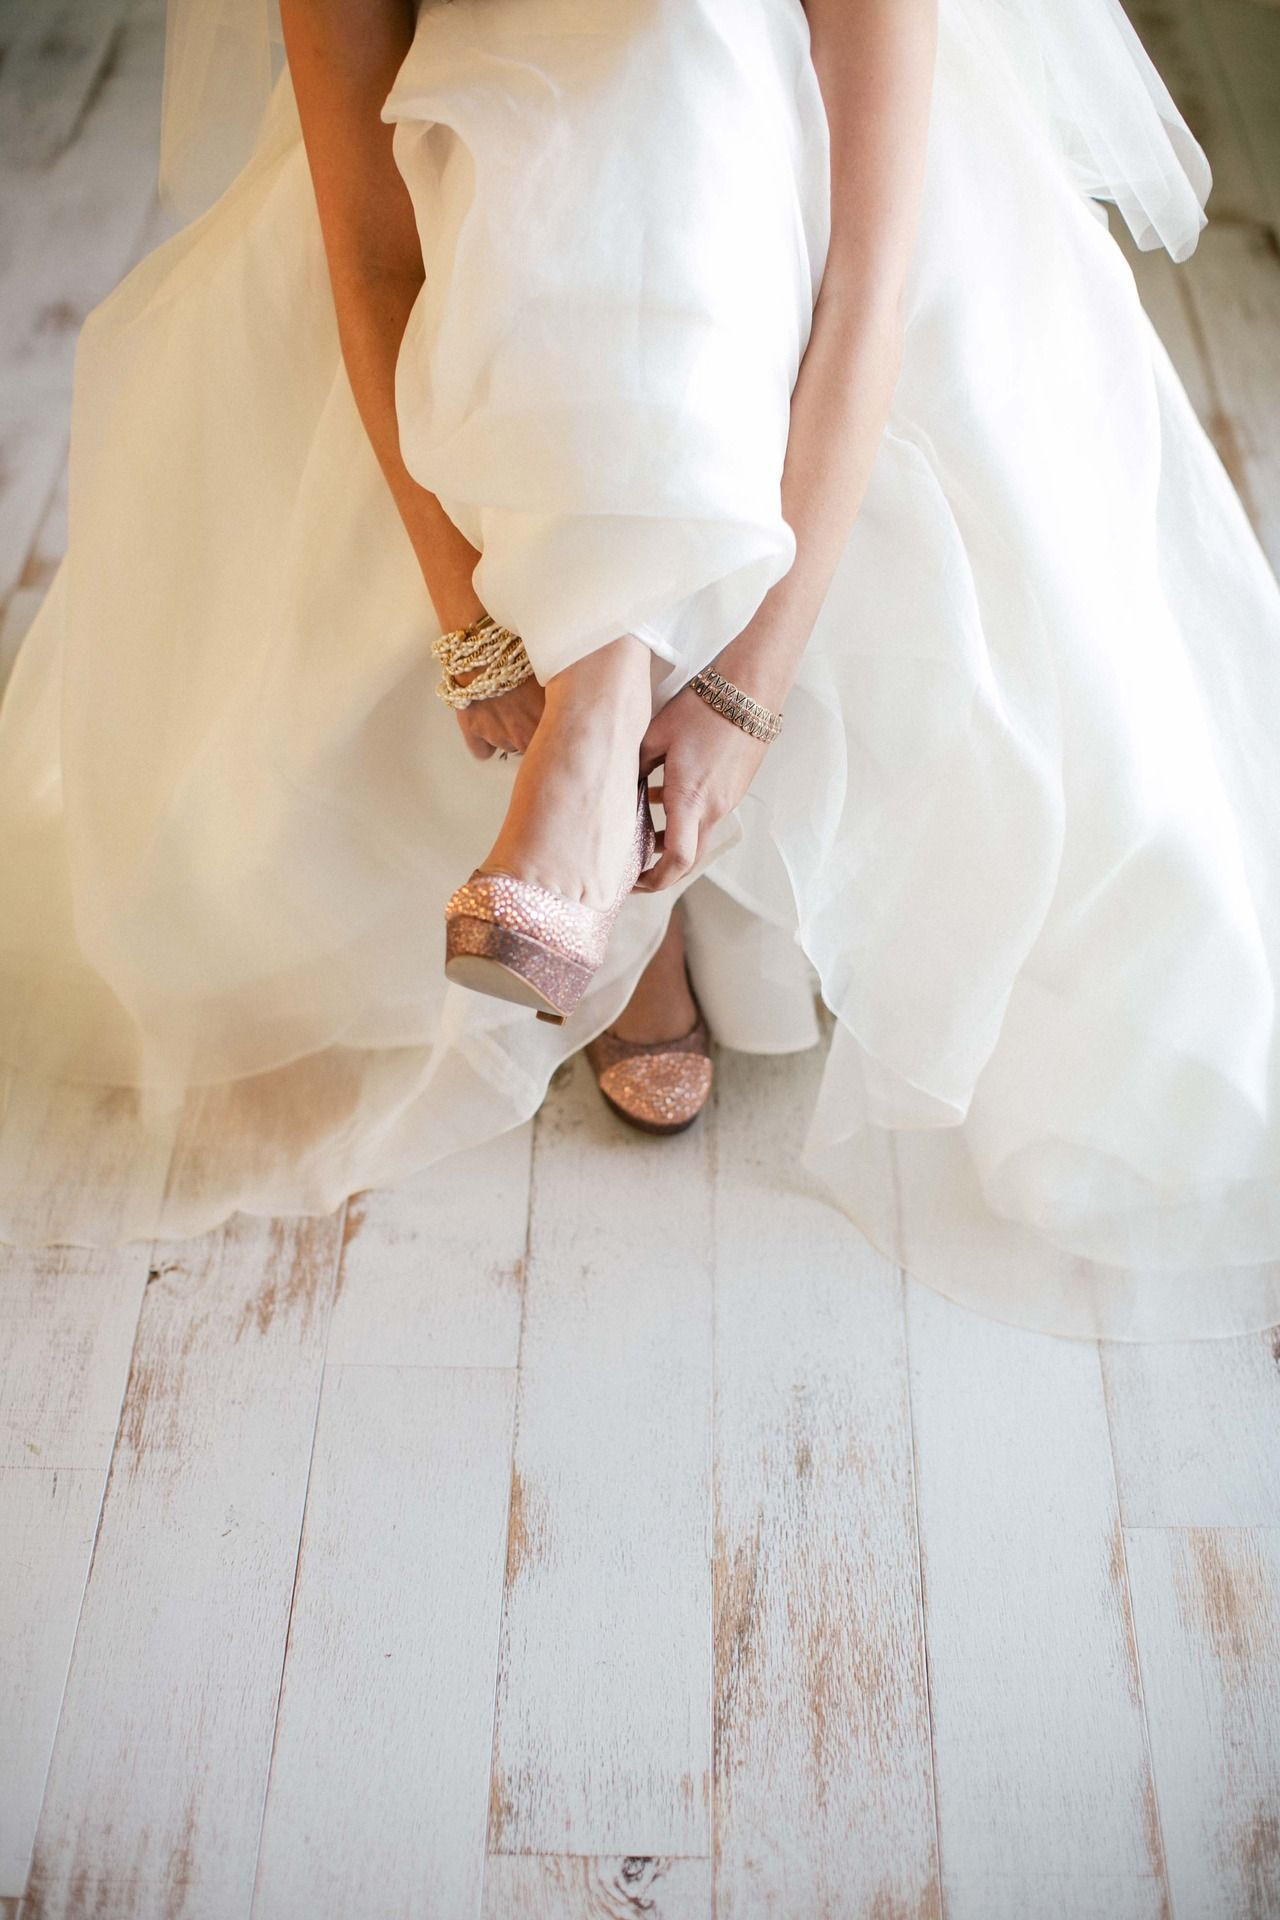 Hannahmcswain Submitted Paige Puts On Her Shoes Tumblr Perfect Wedding